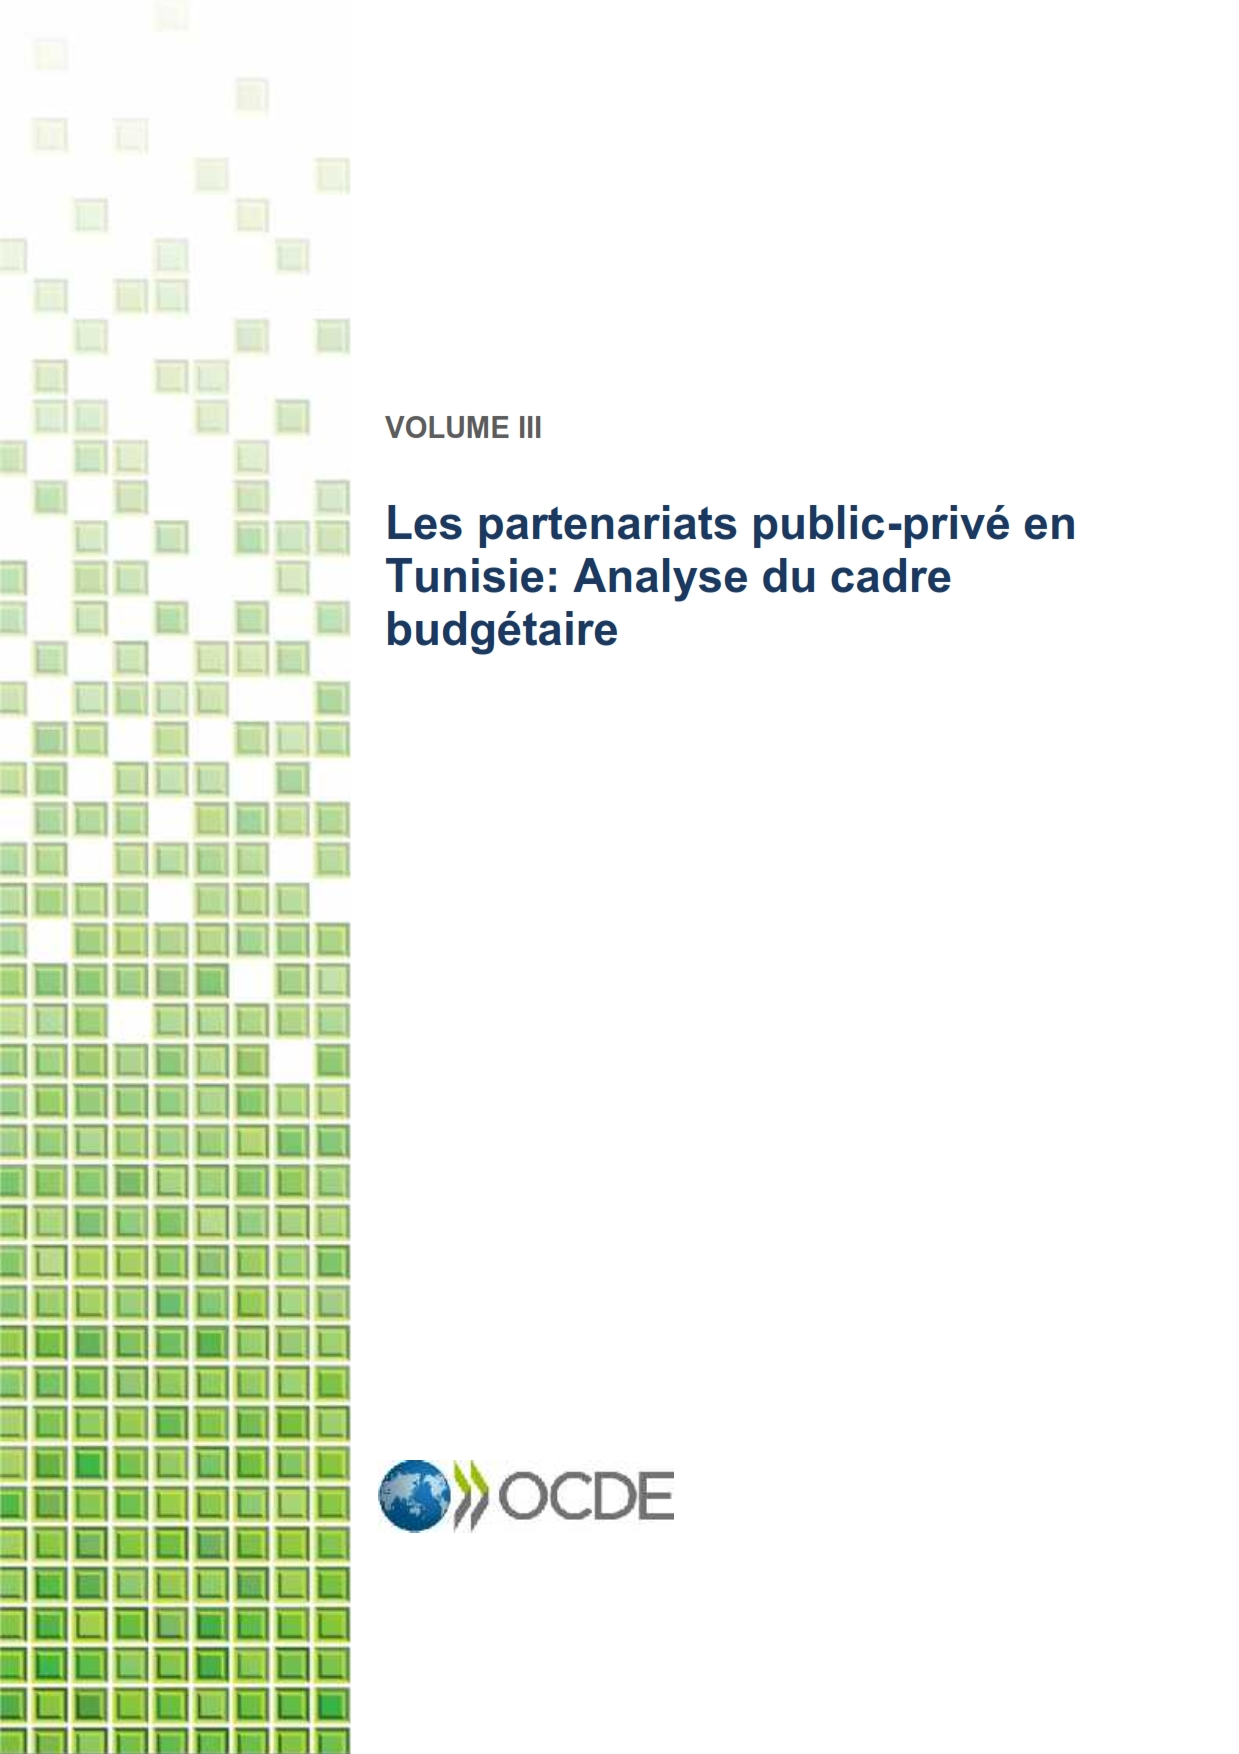 Volume III - Rapport budgétaire PPP